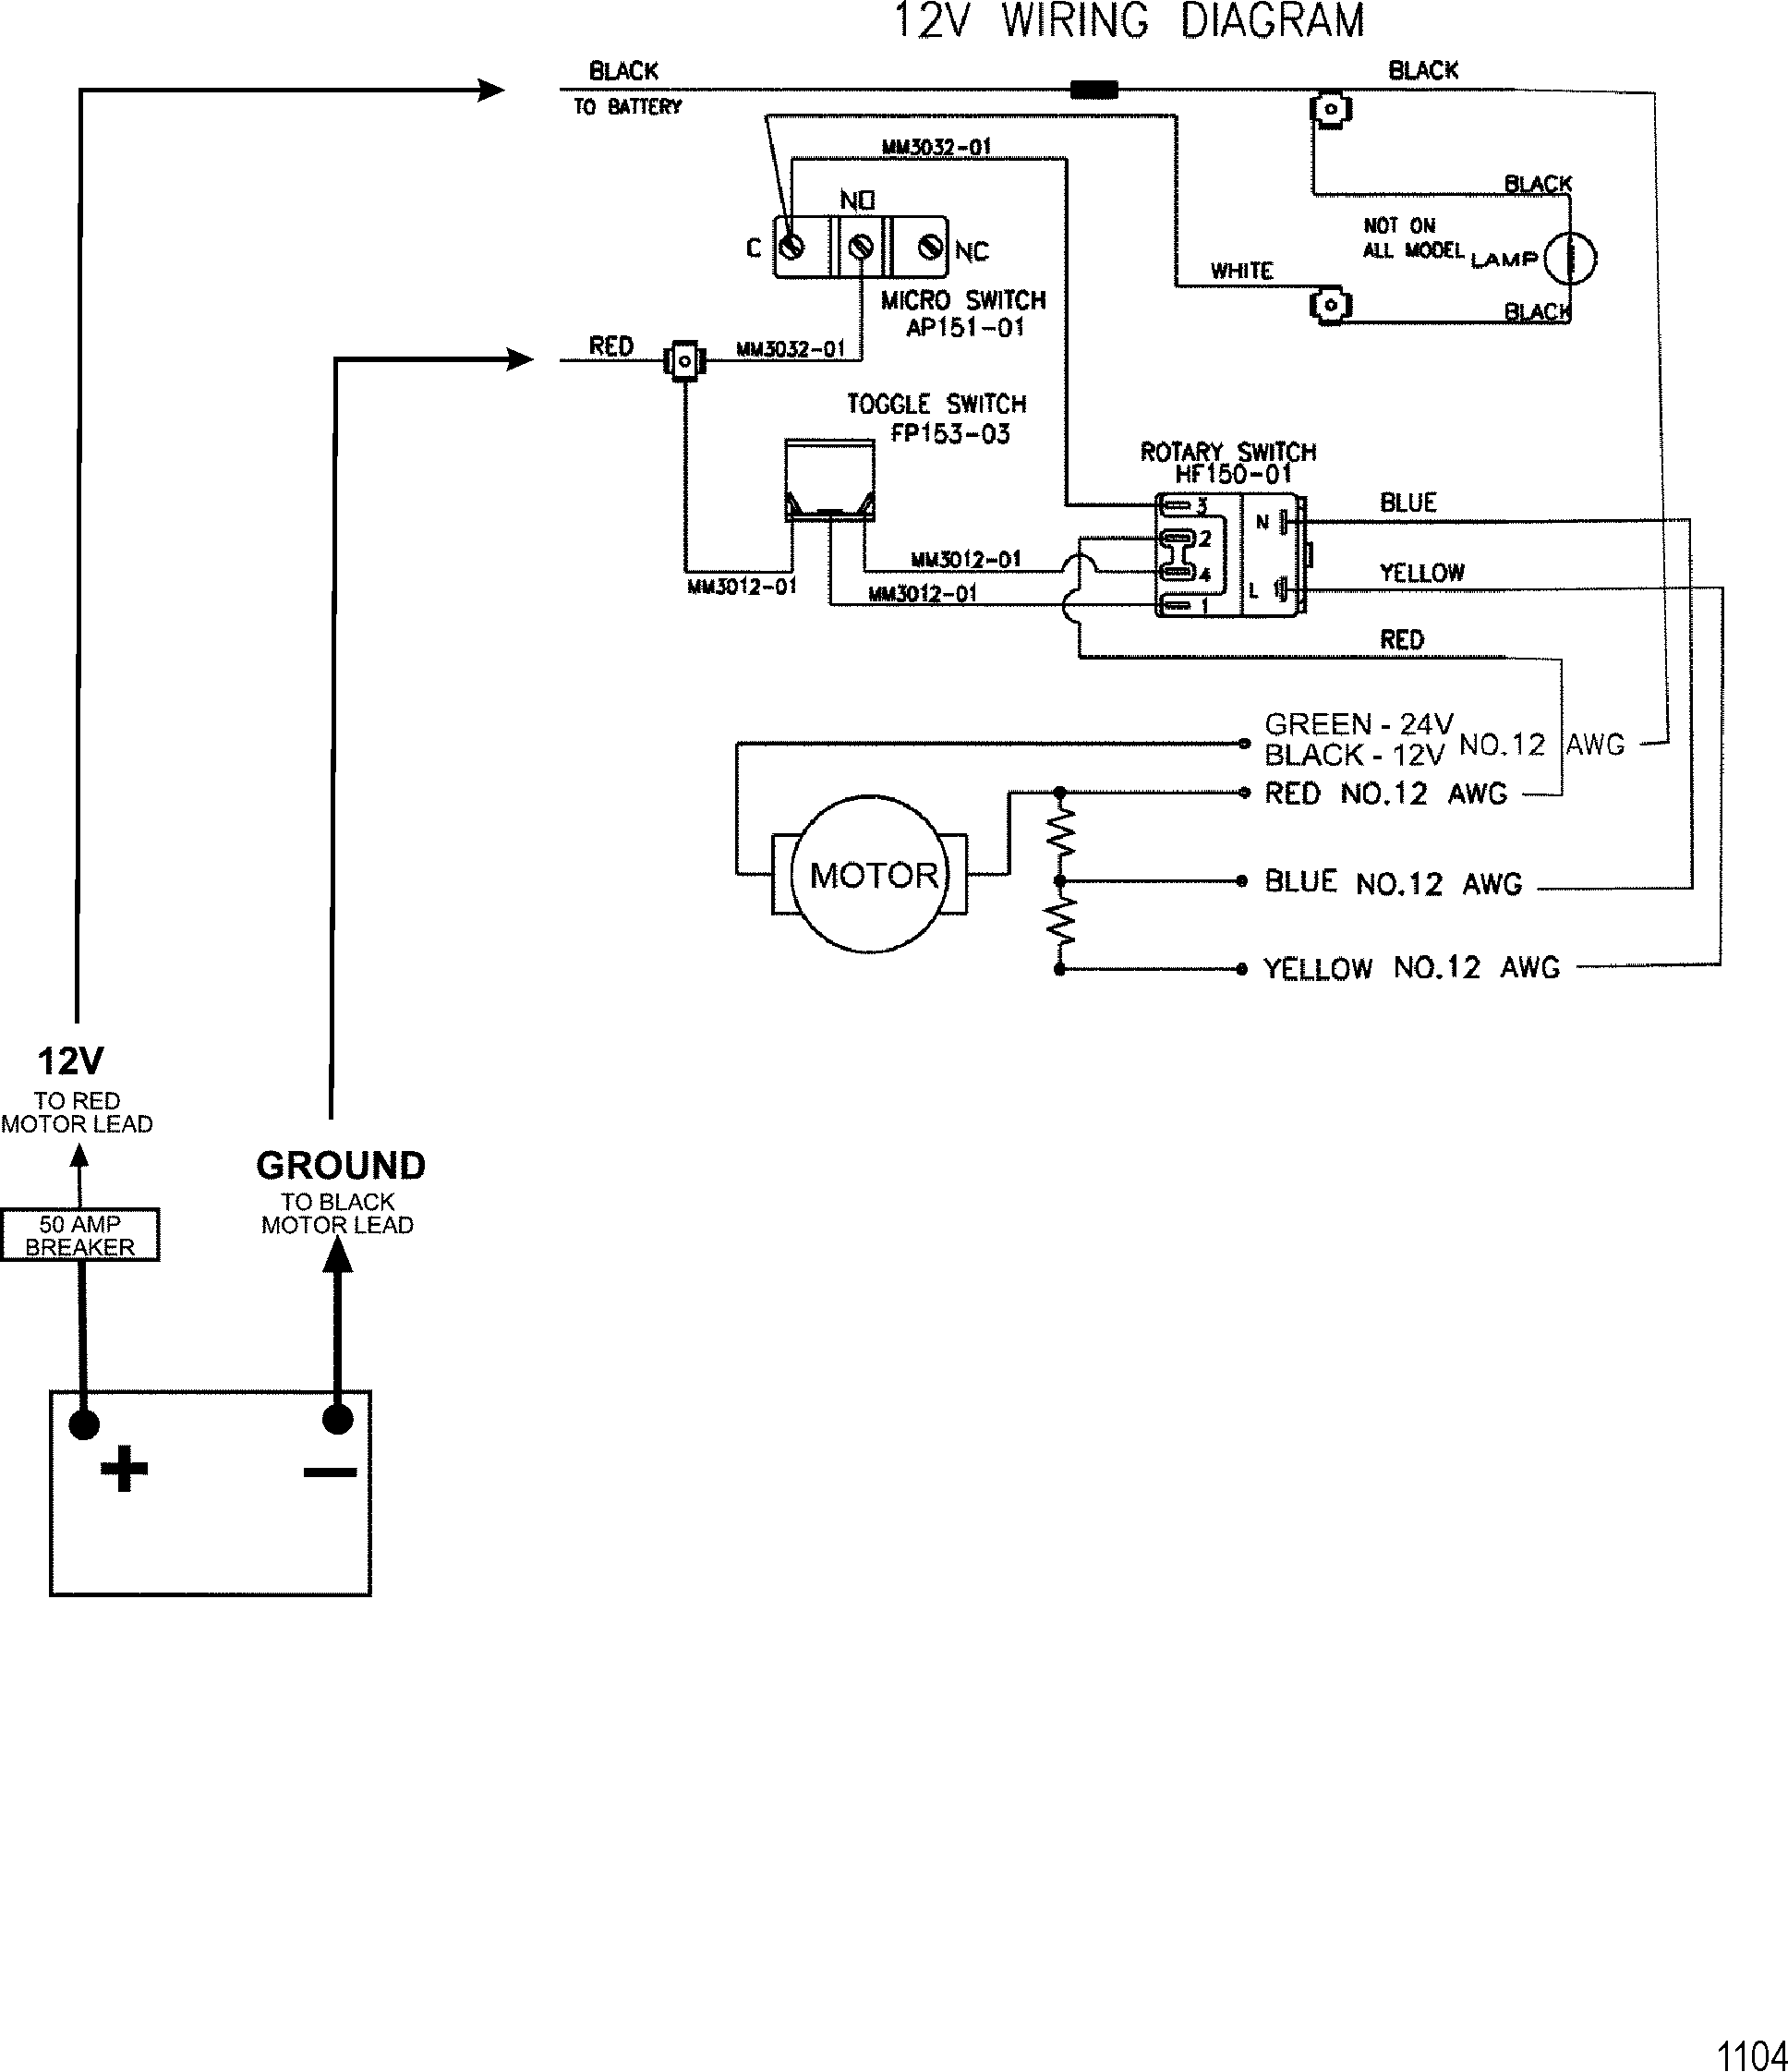 hight resolution of motorguide 24 volt wiring diagram wiring diagram third level rh 18 2 13 jacobwinterstein com motorguide